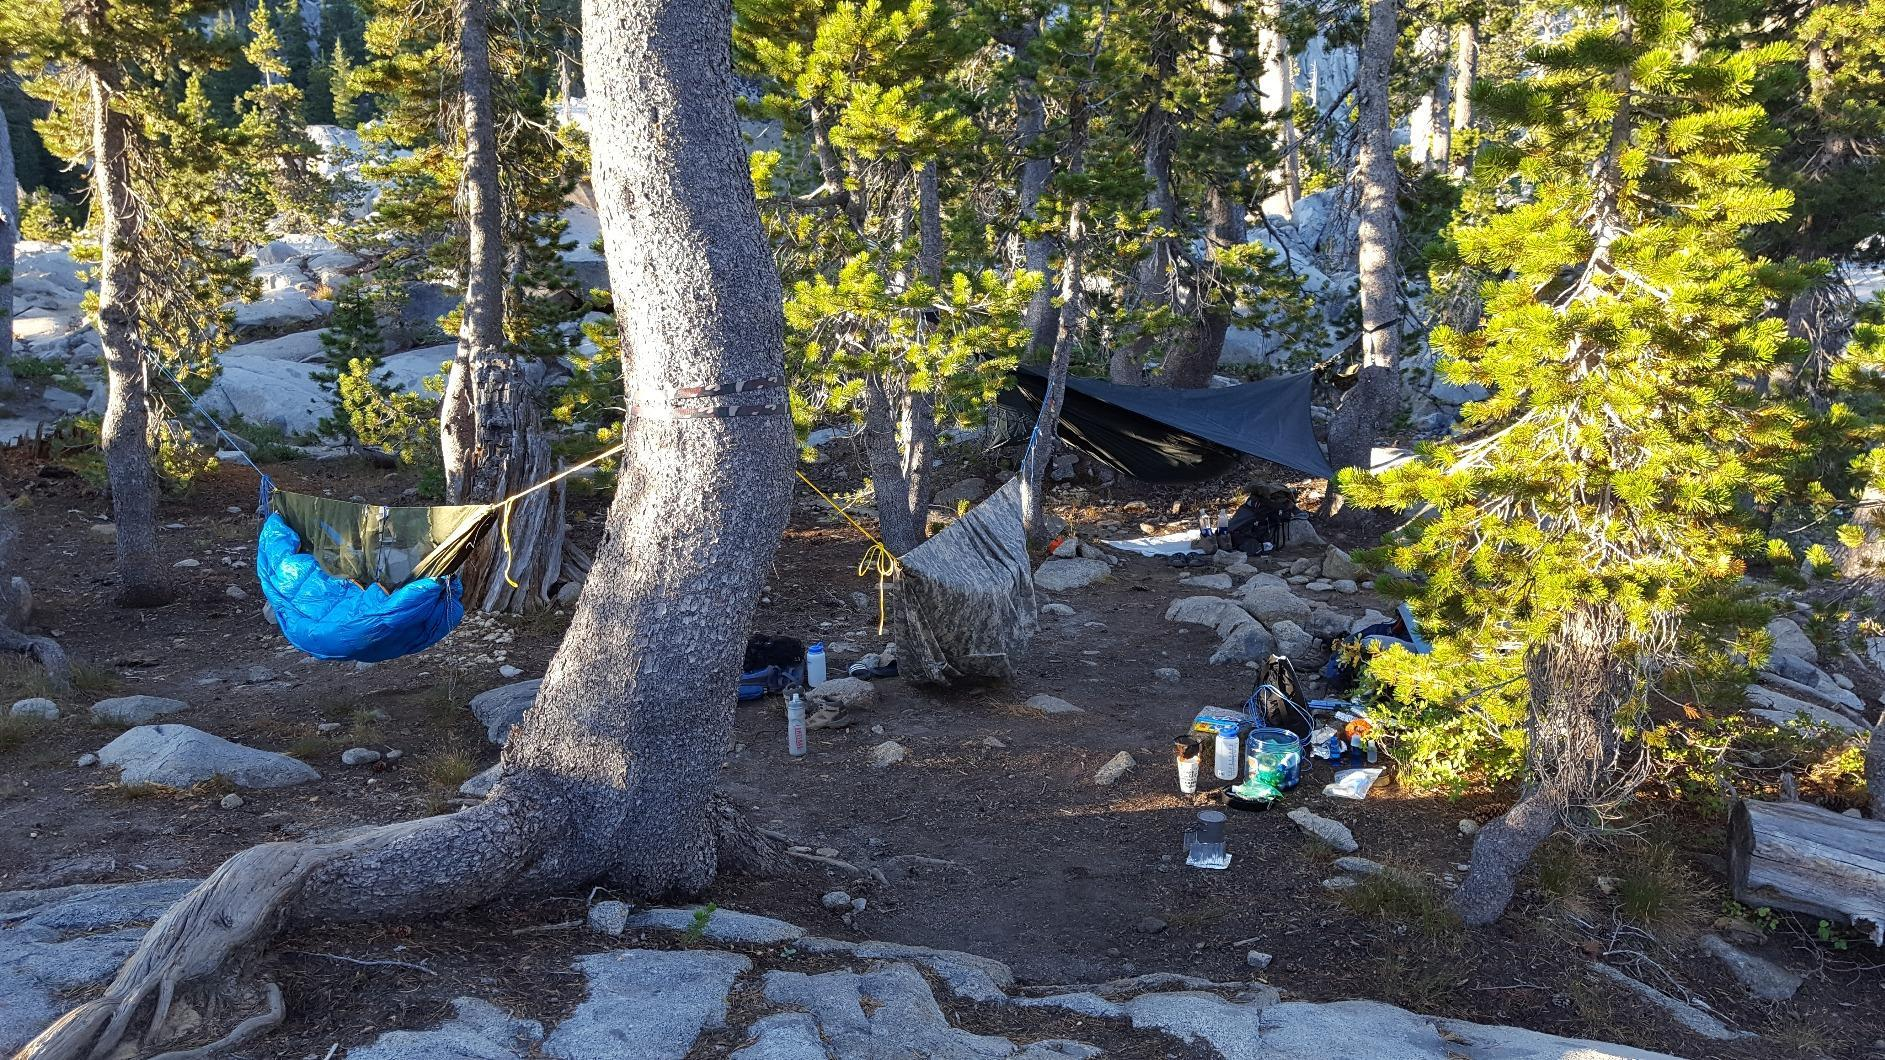 Used the bag as an underquilt during an overnight stay in the high Sierra along the PCT